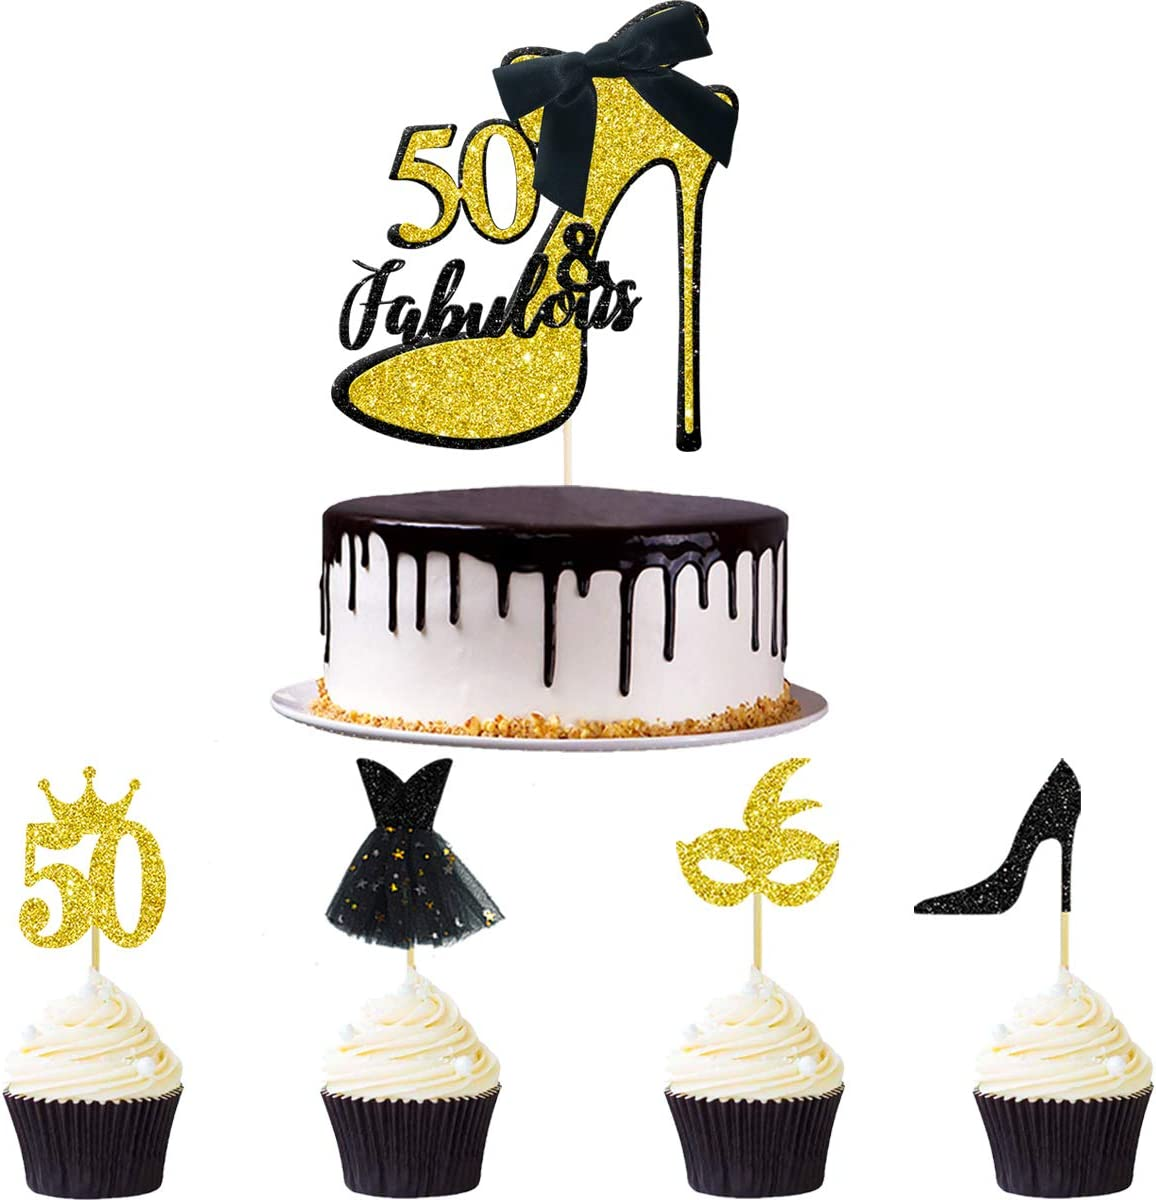 33pcs Black Gold Glitter 50 & Fabulous Cake Topper Fifty and Fabulous Cake Topper Cupcake Toppers Kits for Women Happy 50th Birthday Wedding Celebration Anniversary Cake Decoration